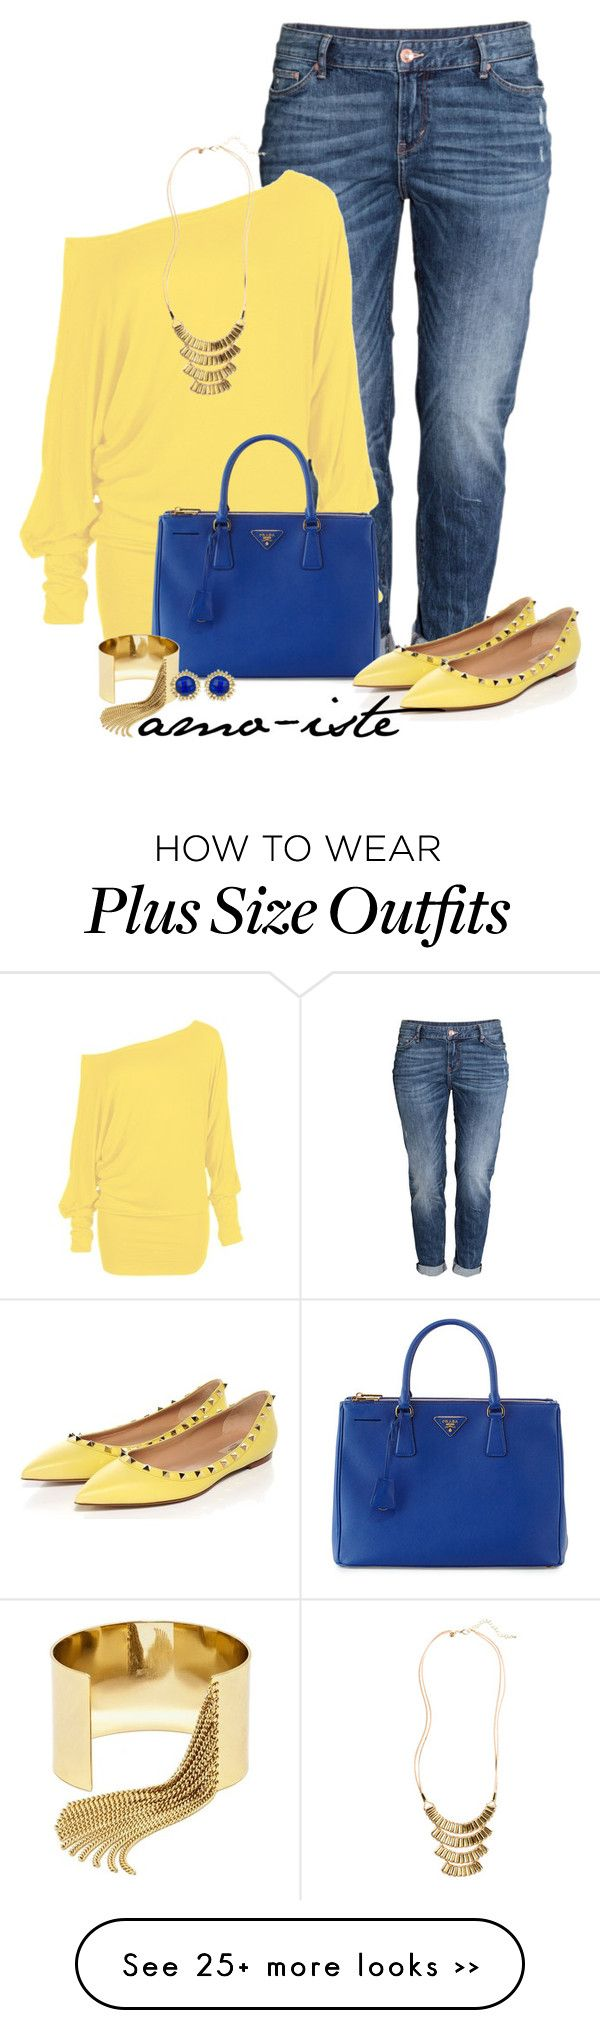 """""""Yellow Flats - Plus Size"""" by amo-iste on Polyvore featuring H&M, Prada, BaubleBar and Kendra Scott"""